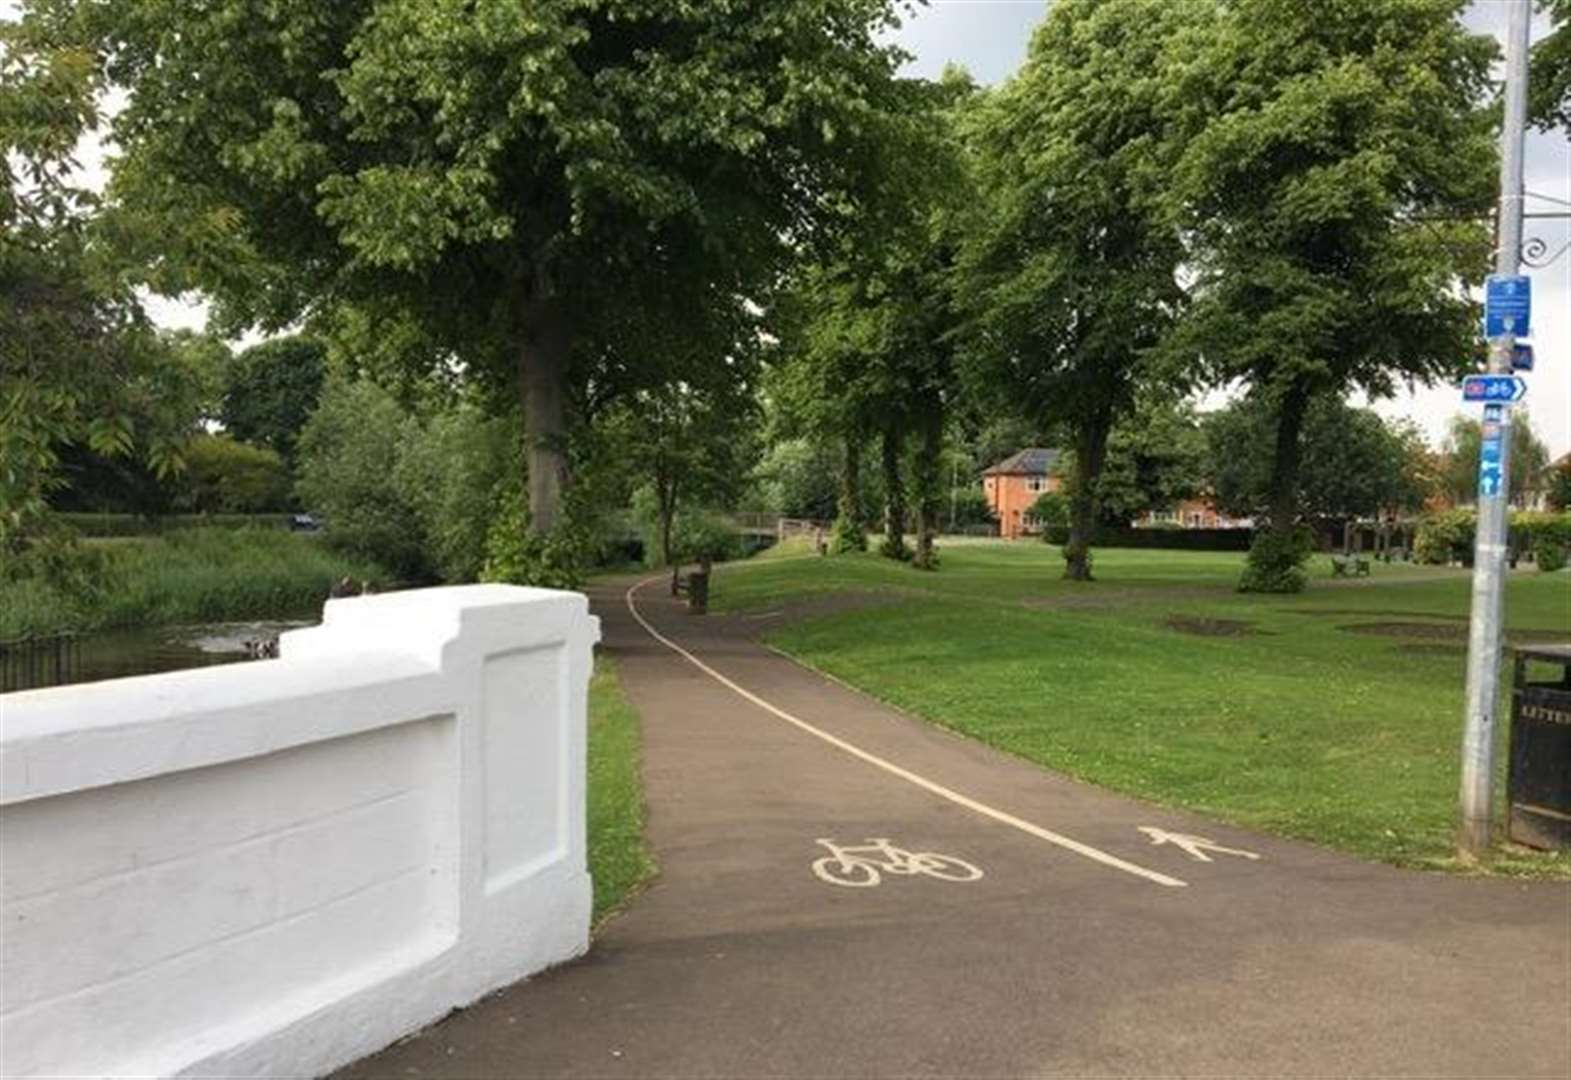 Mum of boy attacked in Grantham park calls for action